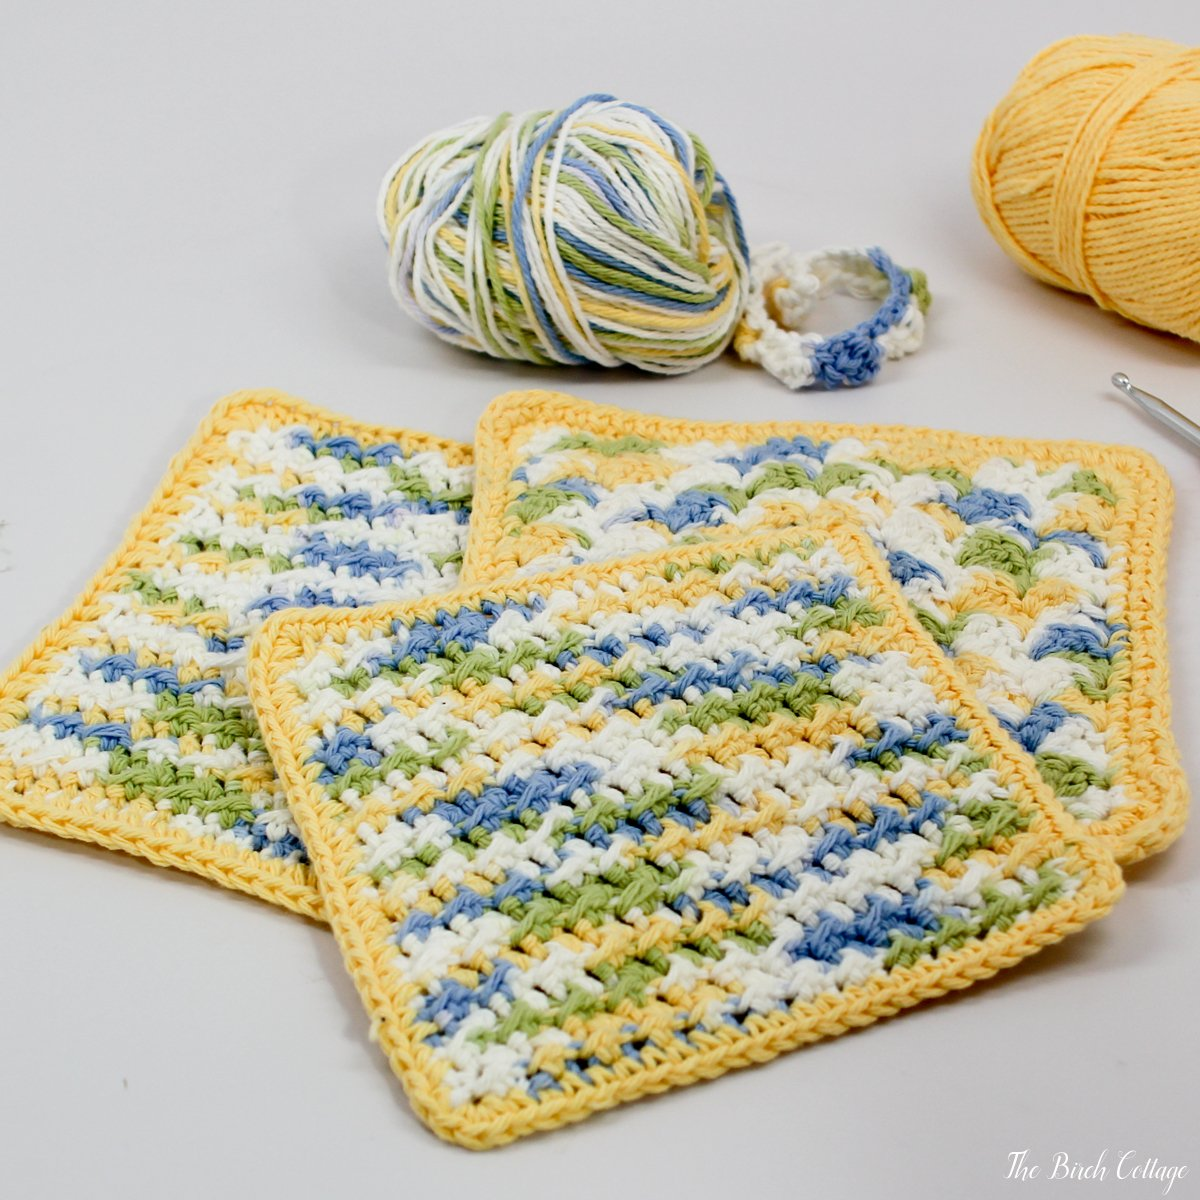 Learn how to crochet! Crochet Crunchy Stitch Dishcloth Pattern from The Birch Cottage